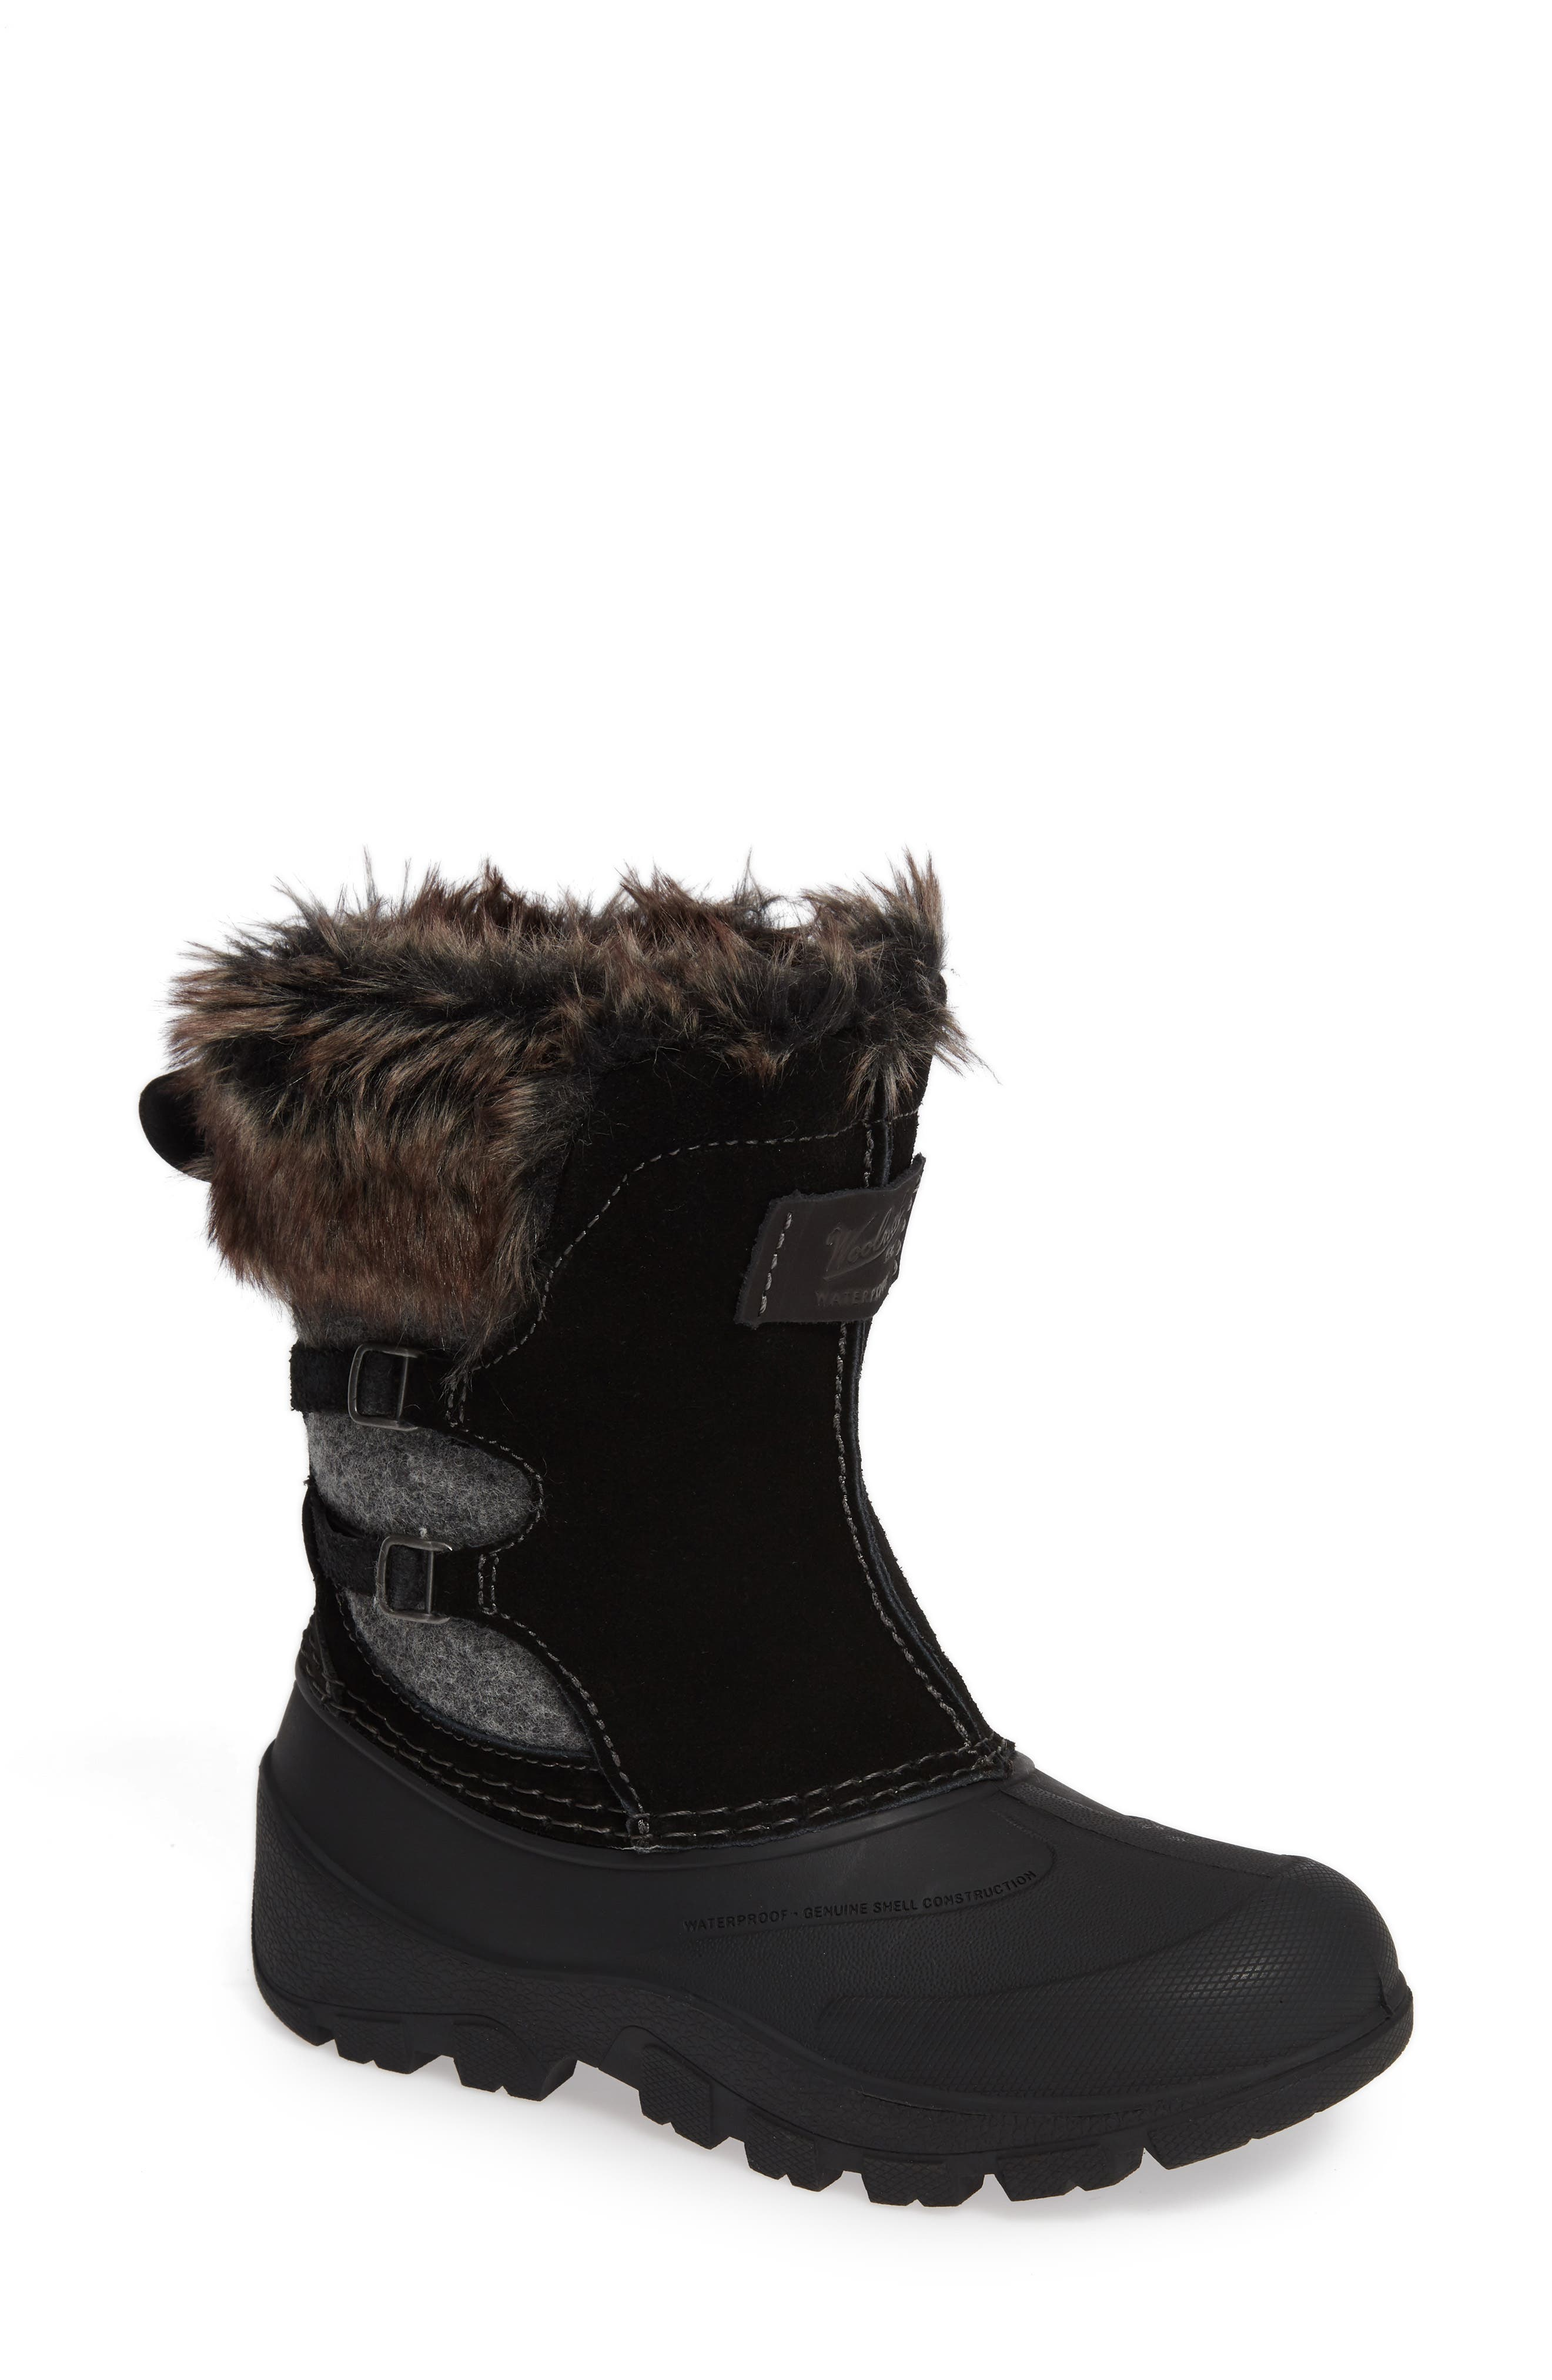 Icecat II Fully Wooly Waterproof Insulated Winter Boot,                         Main,                         color, BLACK WOOL